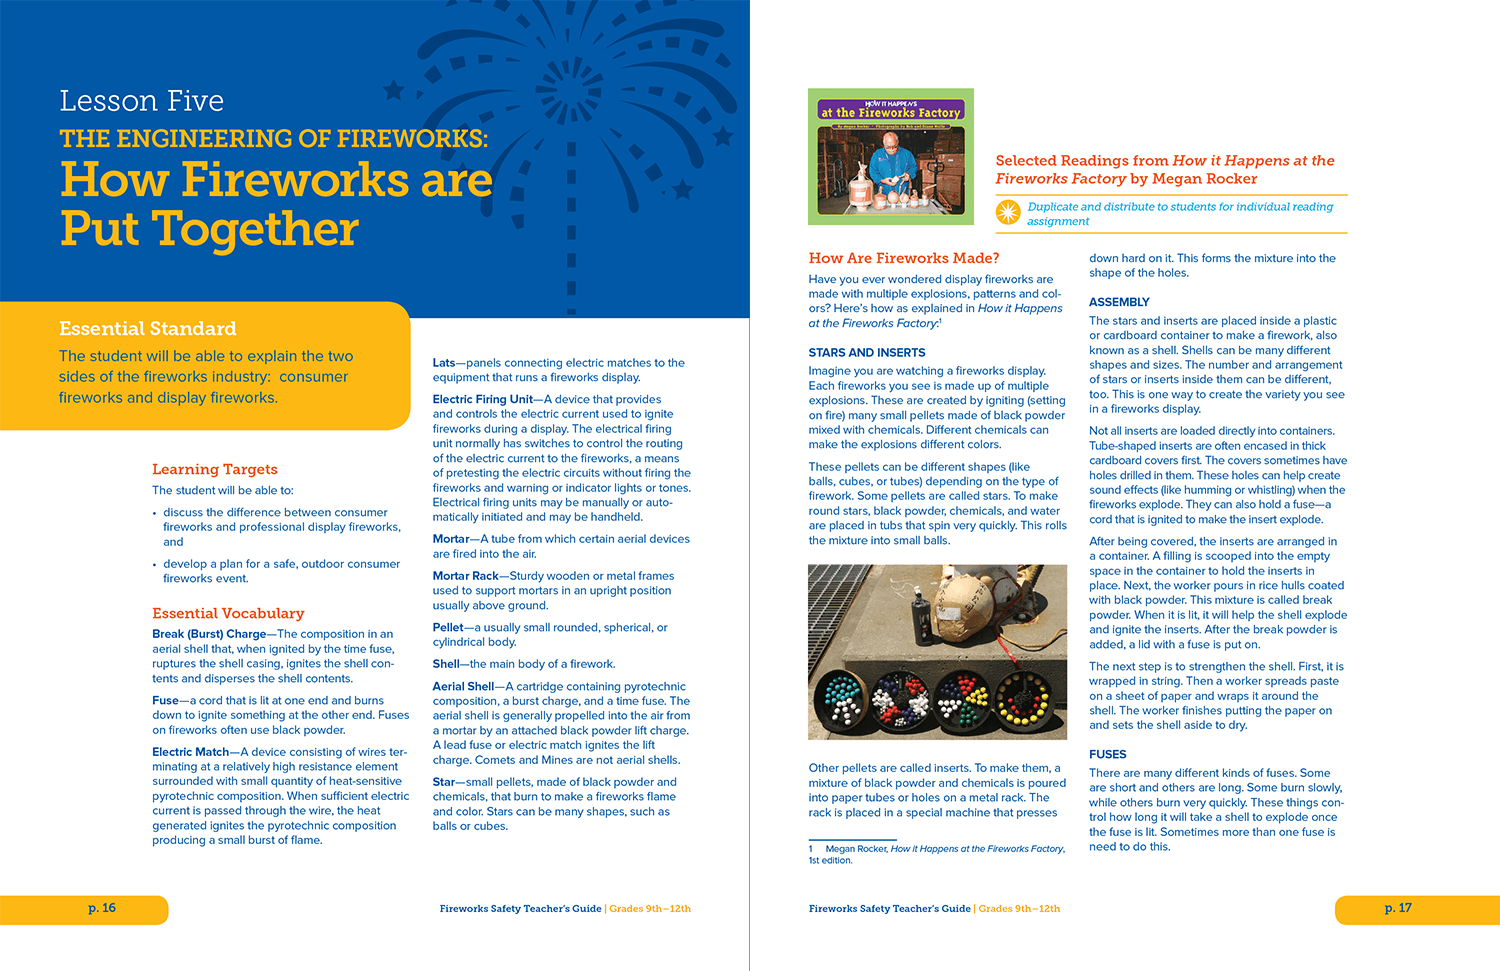 apa_fireworks-guide-9.png